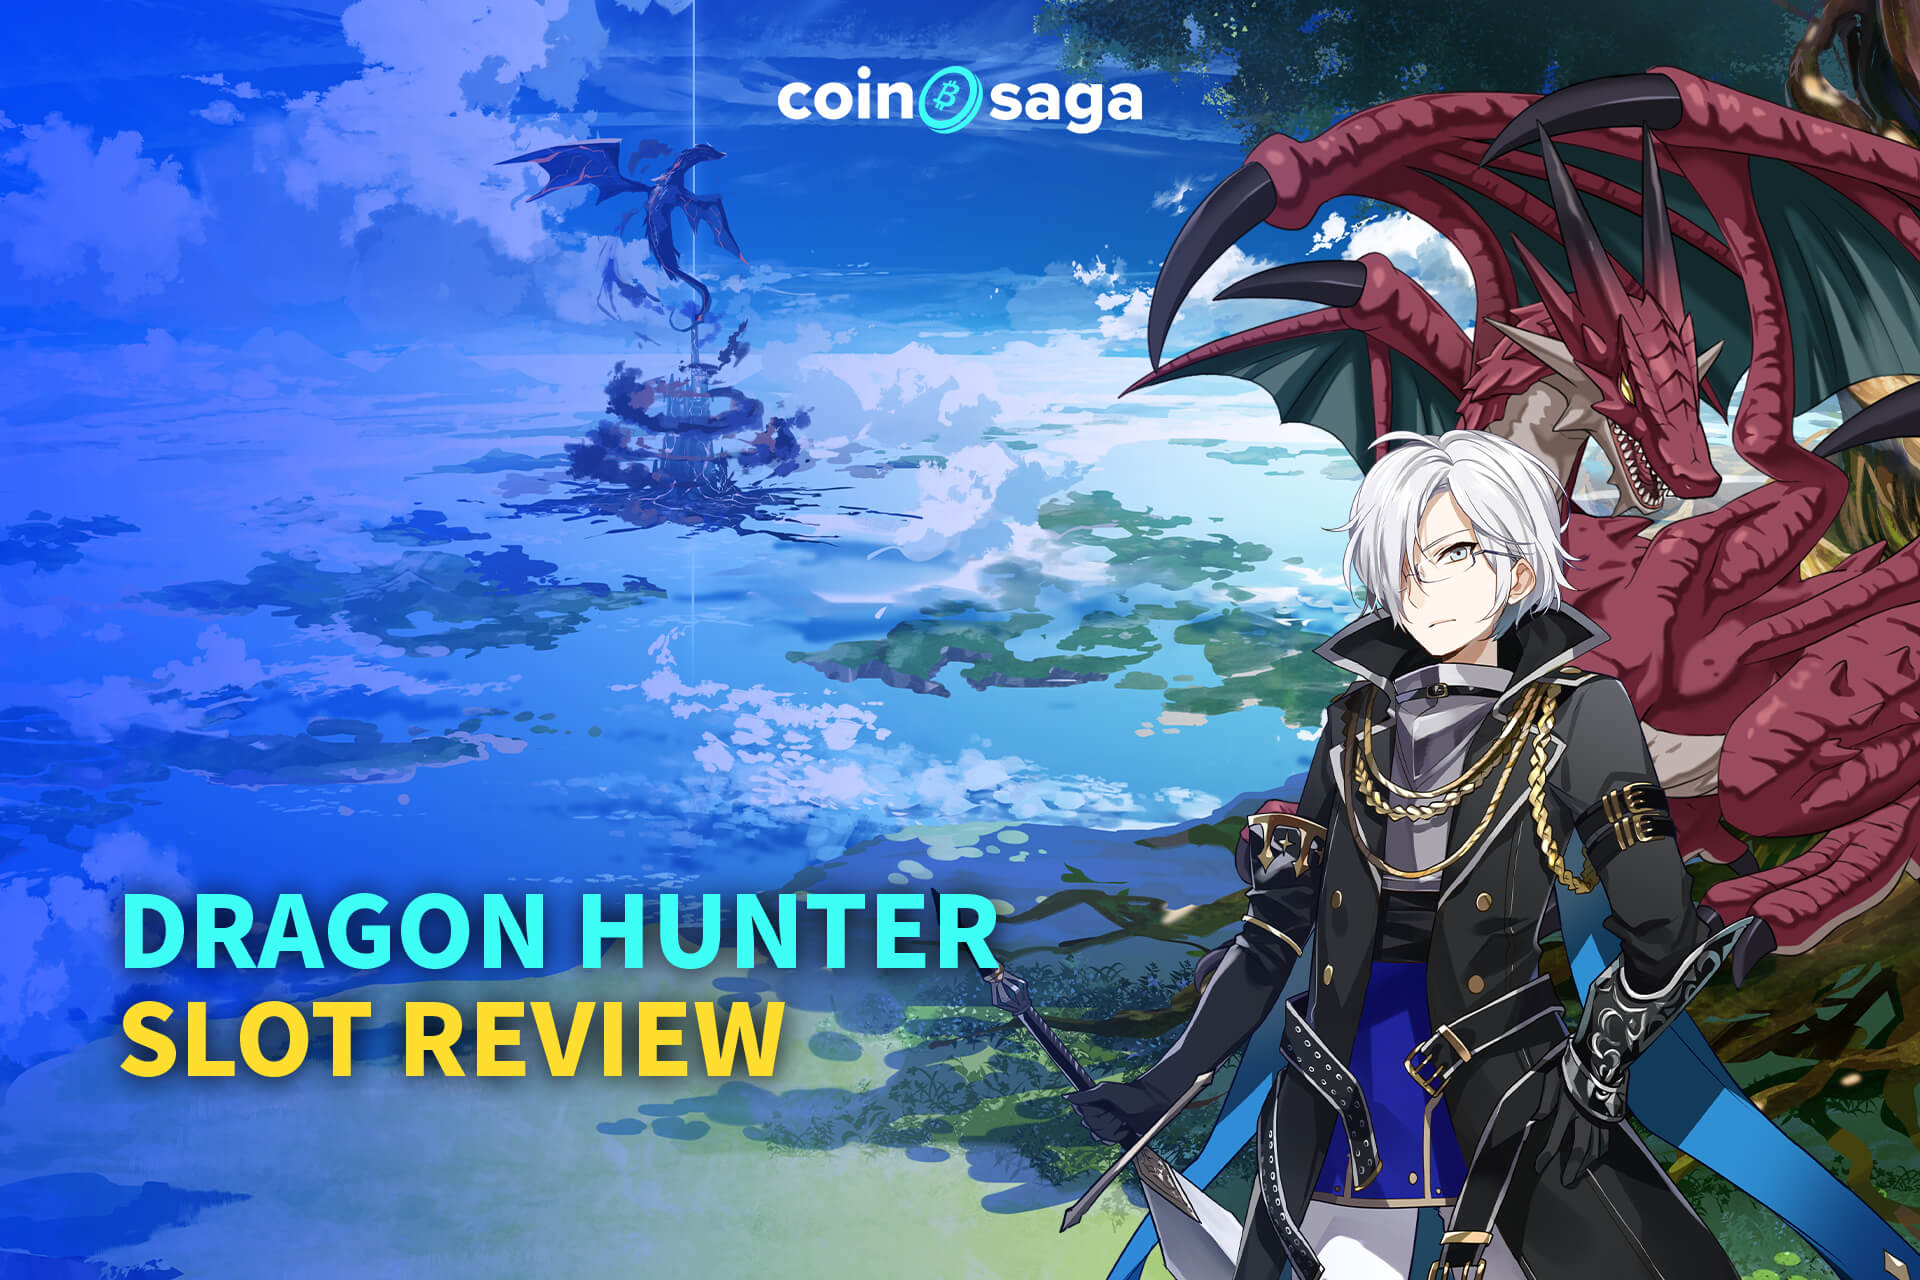 Dragon Hunter Slot Review